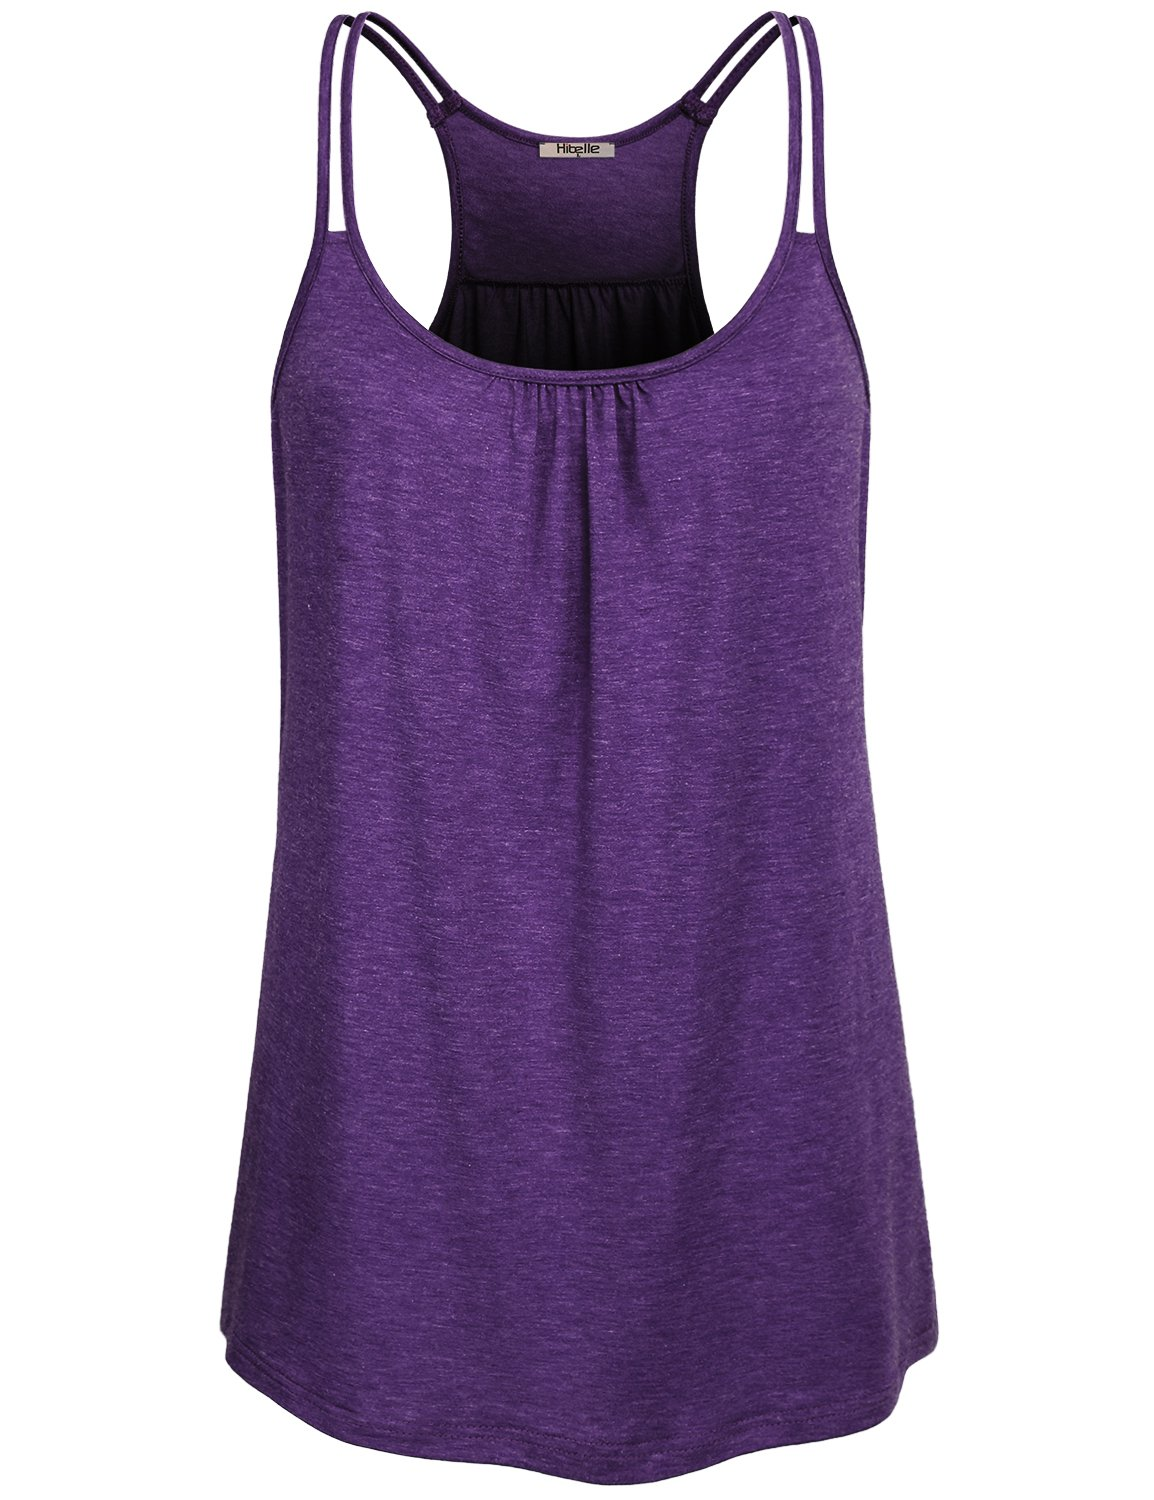 Hibelle Womens Sportswear, Ladies Sleeveless Summer Stretchy Yoga Tank Tops Sports Shirts Scoop Neck Flowy Curved Hem Trendy Pretty Front Ruched Tunic Racerback Workout Top Purple Small